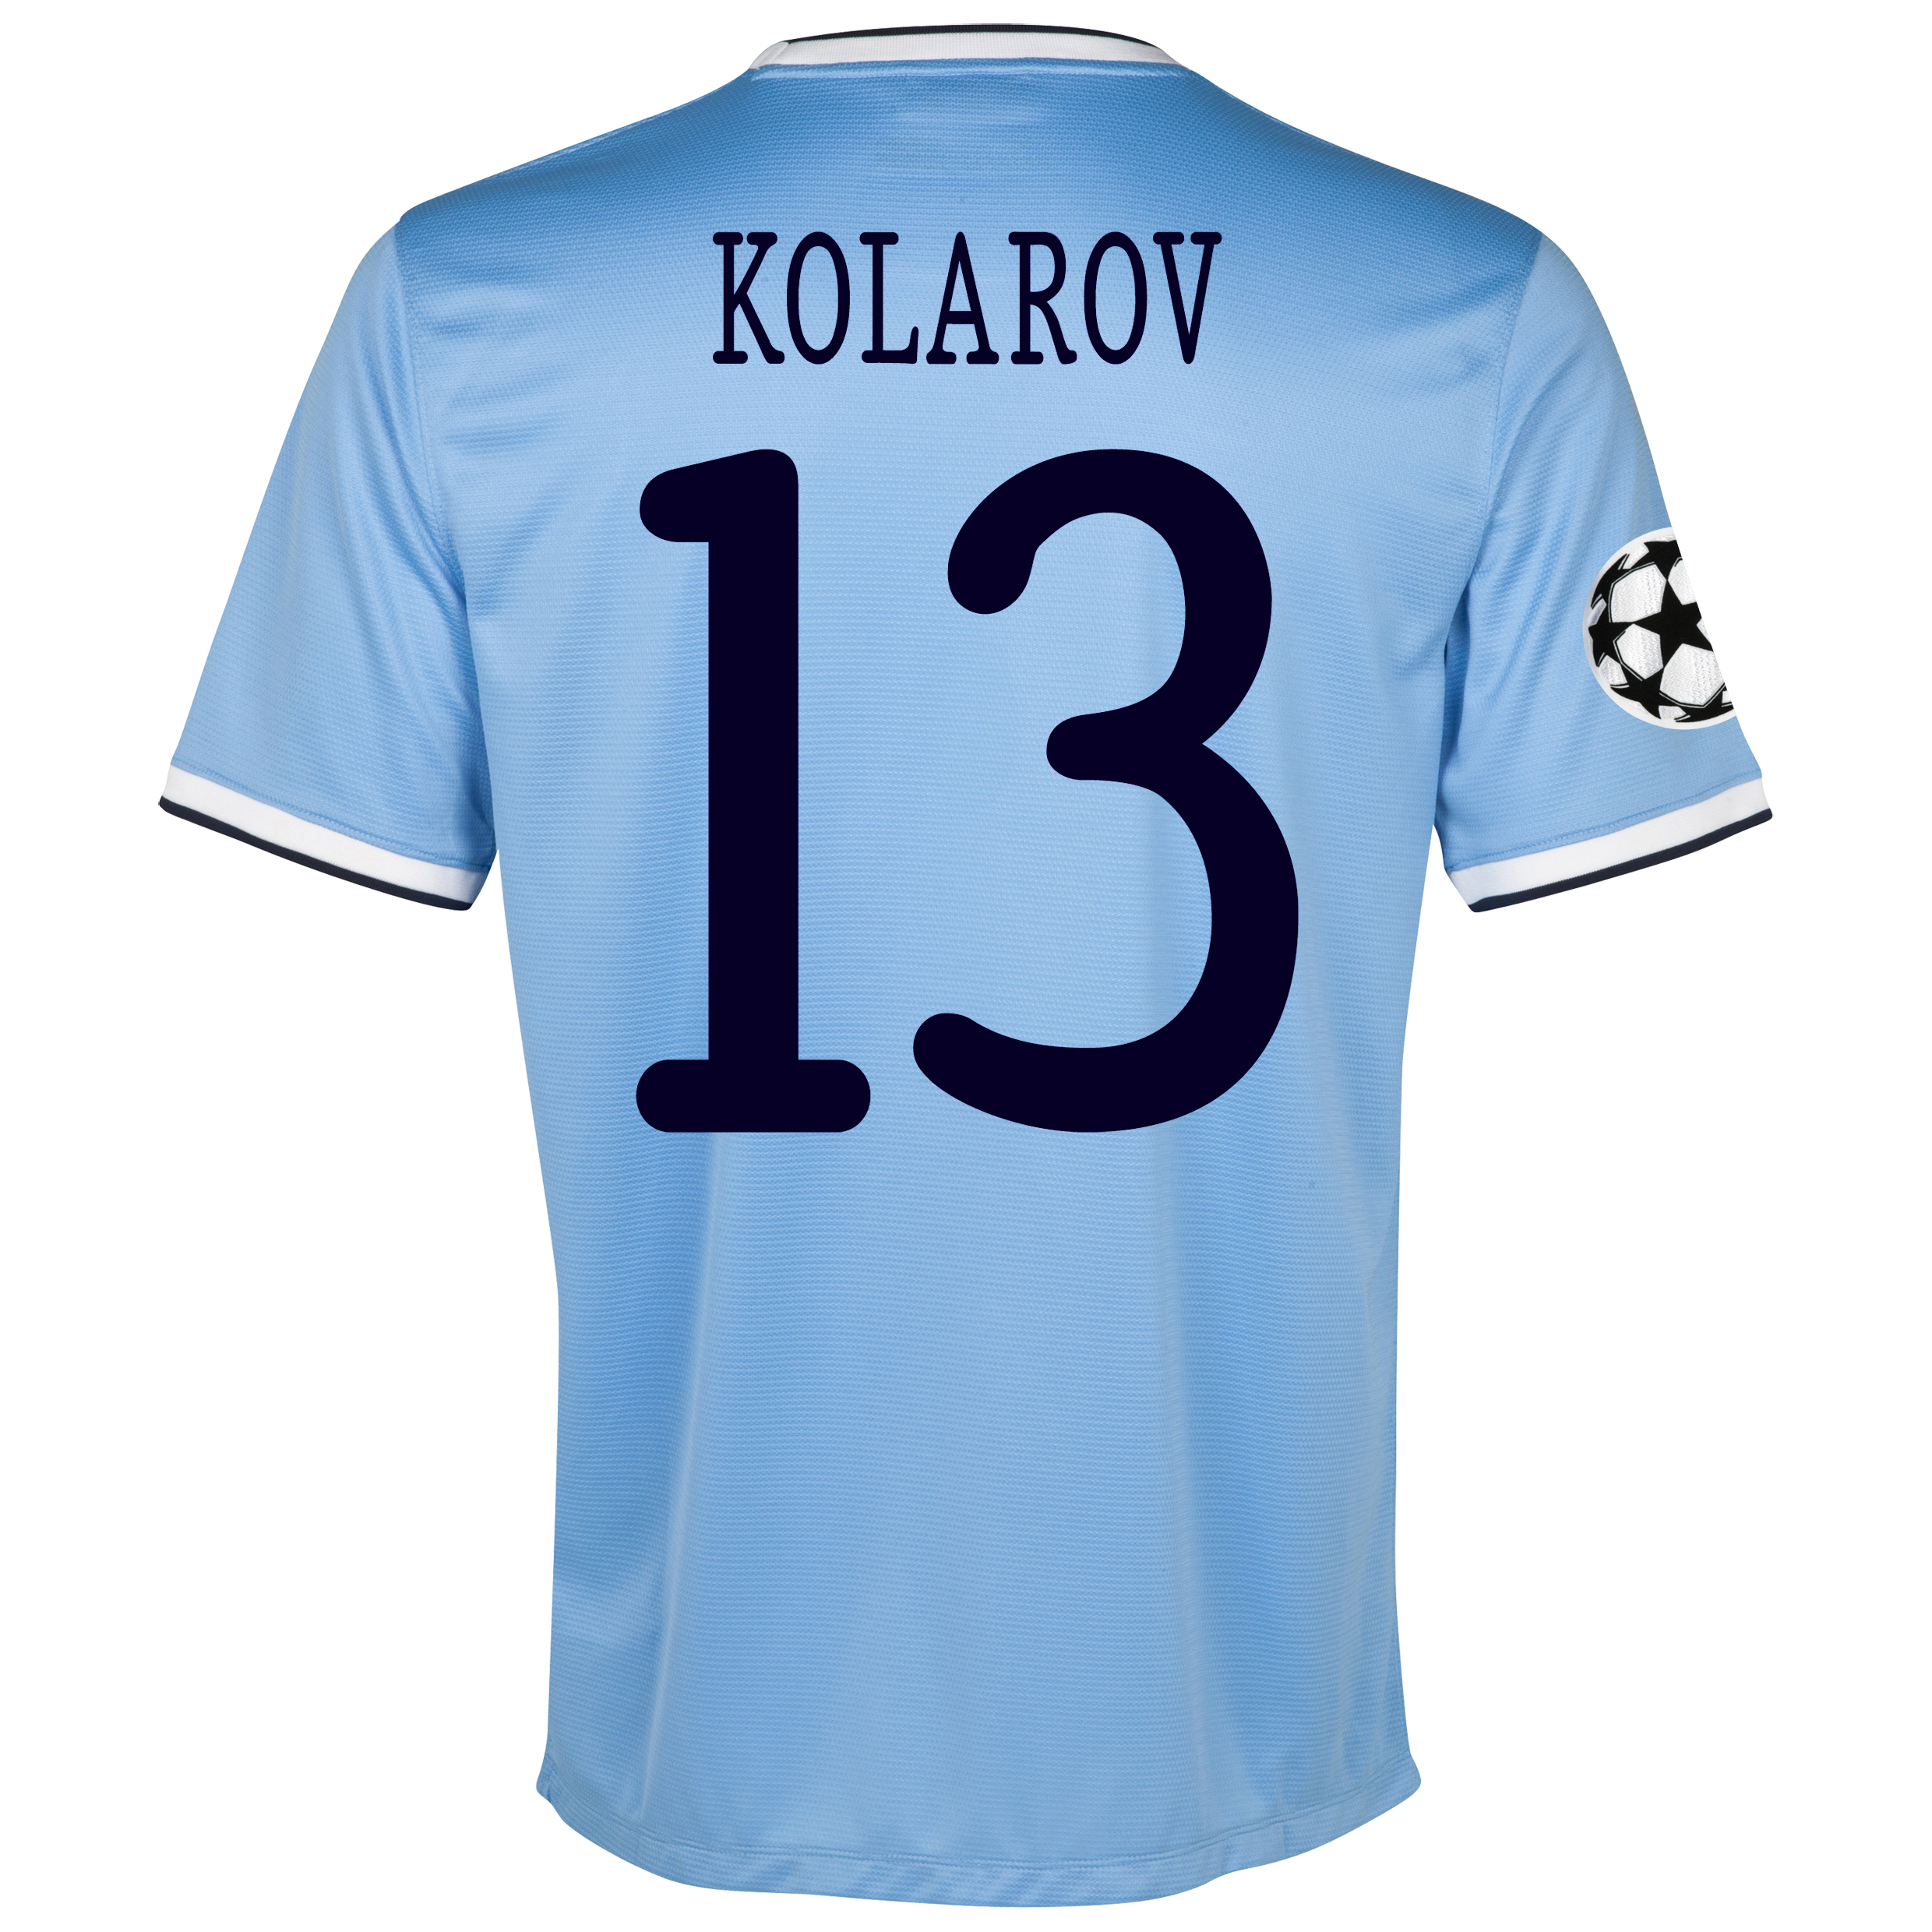 Manchester City UEFA Champions League Home Shirt 2013/14 with Kolarov 13 printing